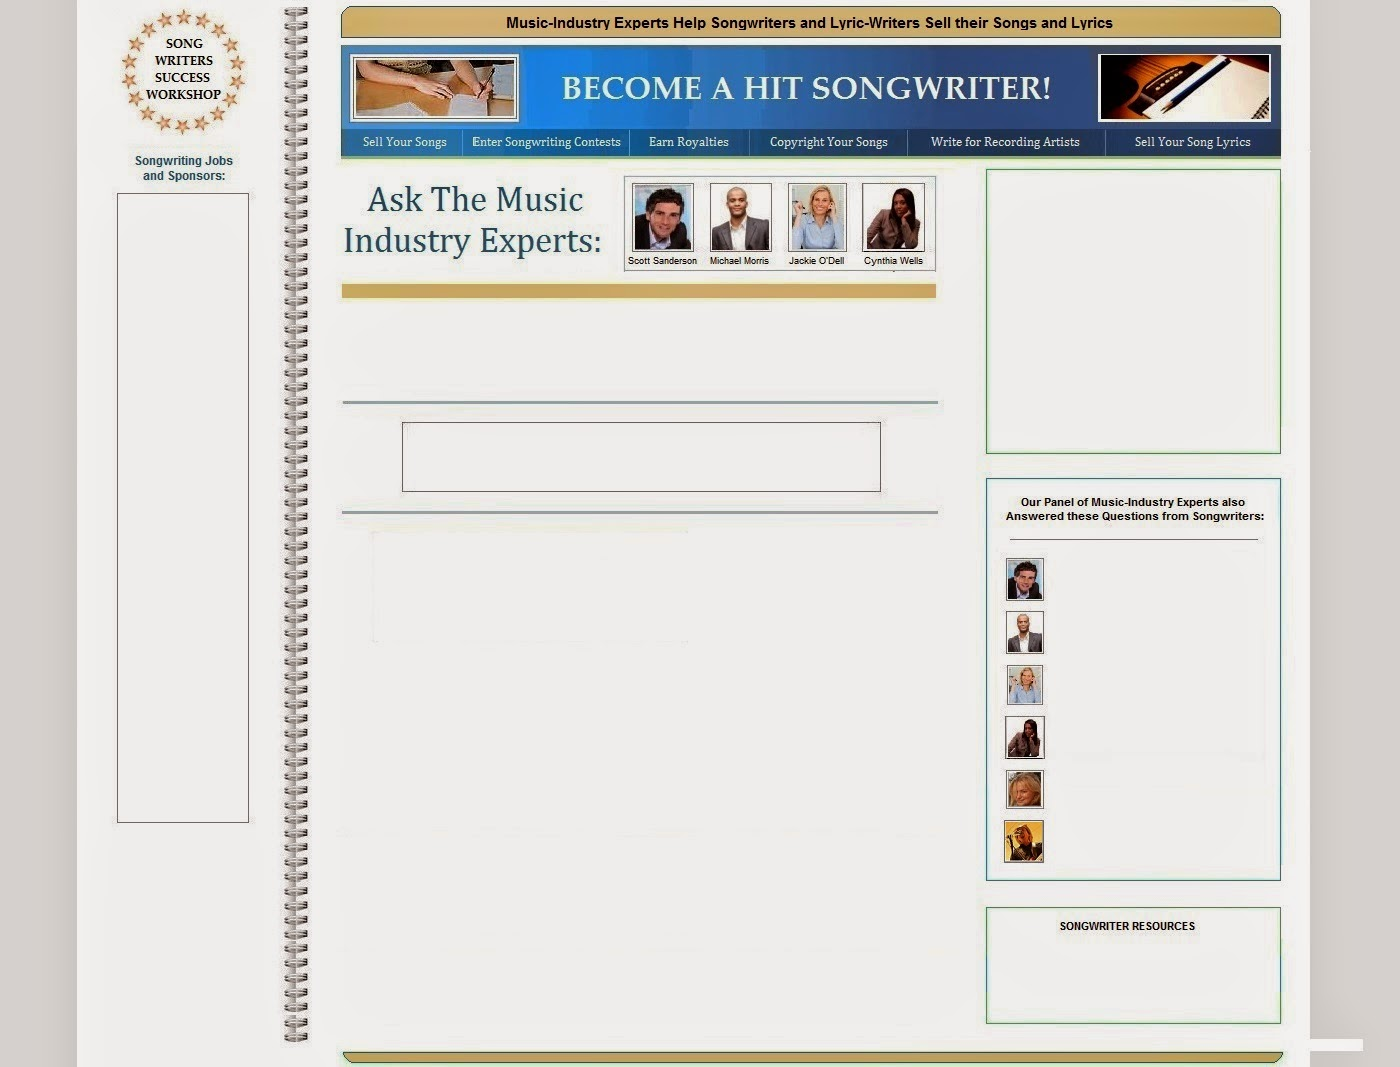 How to Sell Your Songs and Lyrics